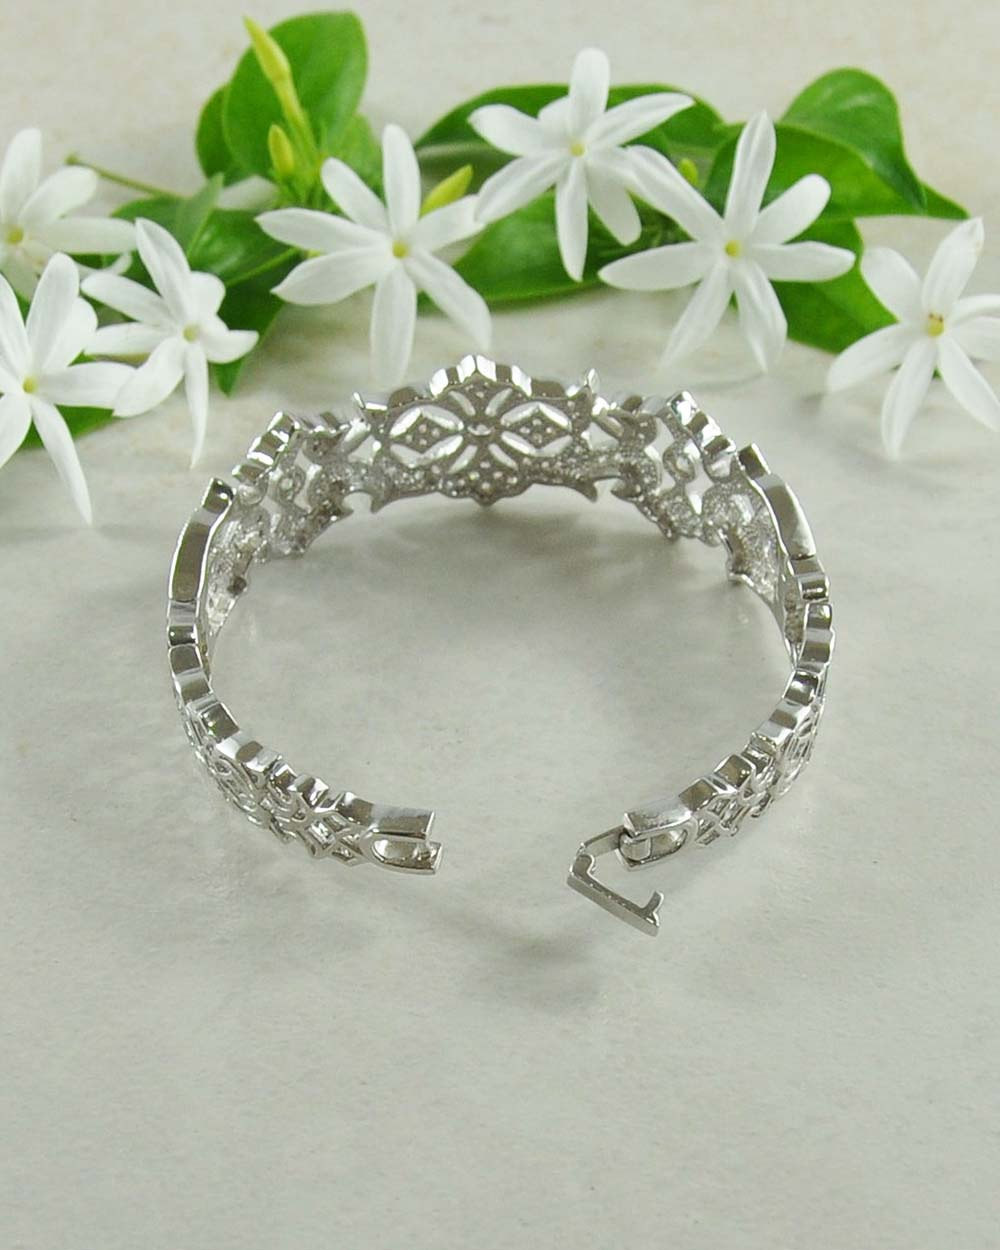 Starlight Brilliant CZ Studded Bracelet in 925 Sterling Silver